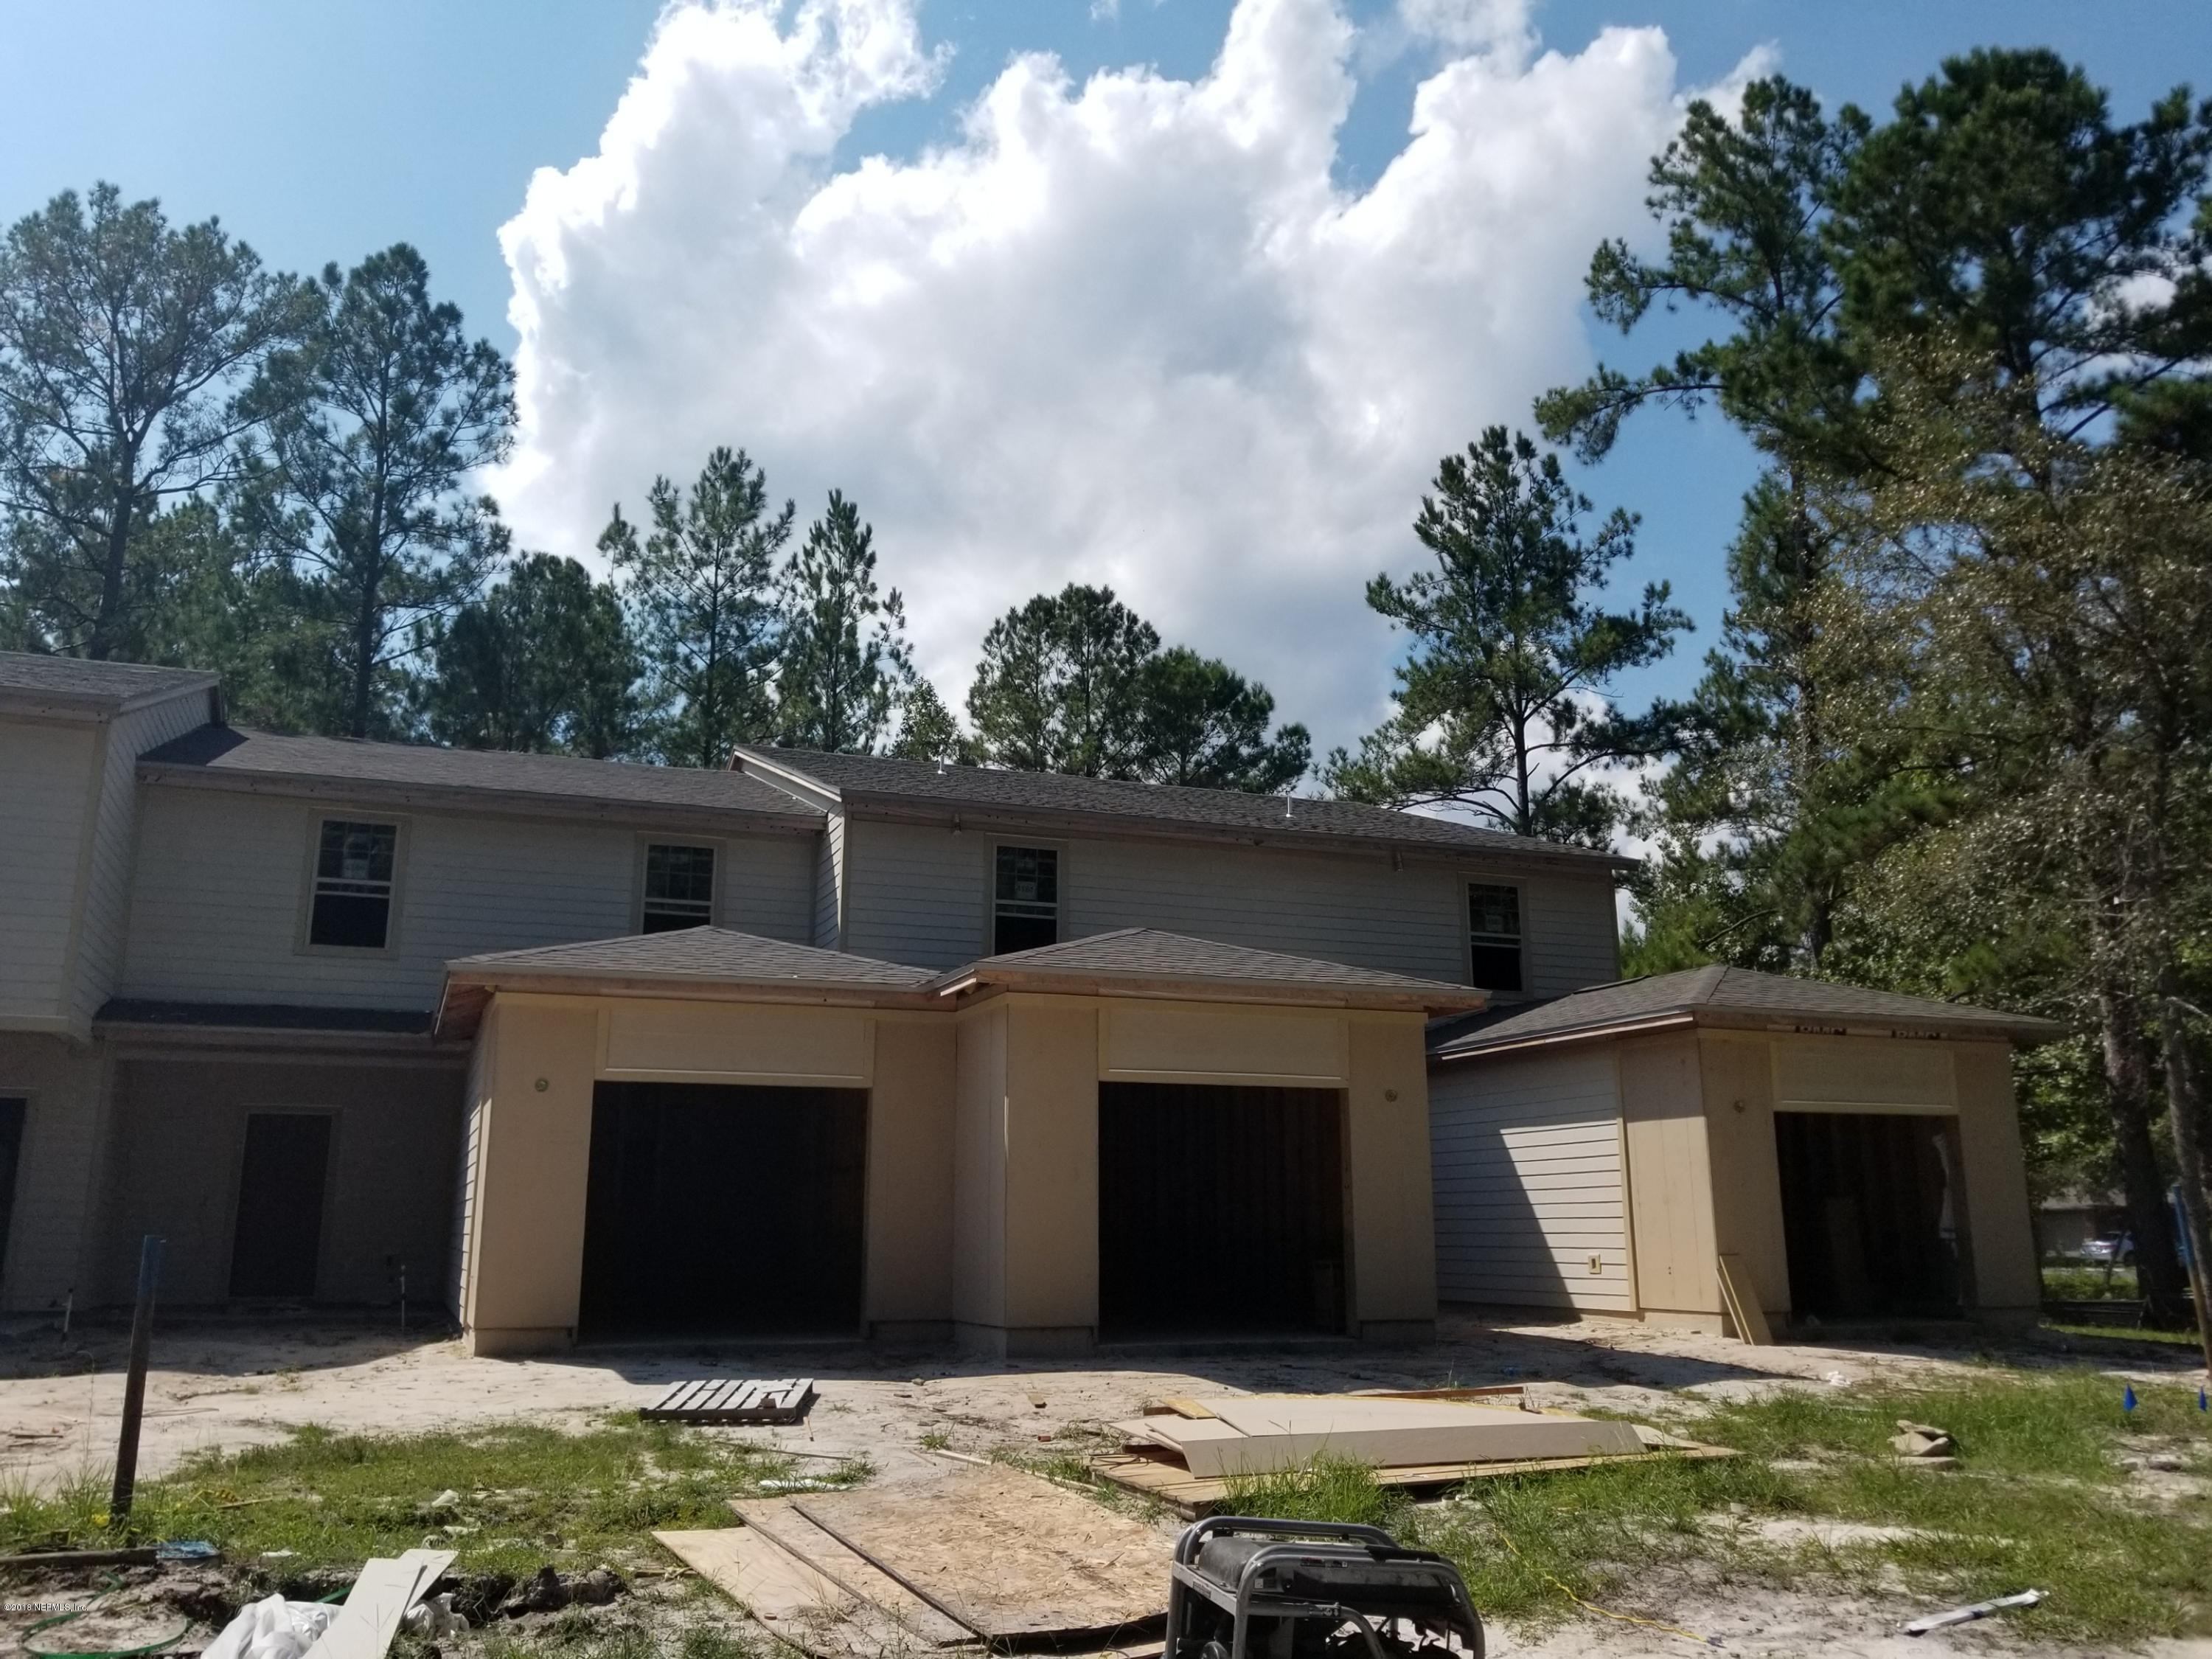 4186 QUIET CREEK, MIDDLEBURG, FLORIDA 32068, 3 Bedrooms Bedrooms, ,2 BathroomsBathrooms,Residential - condos/townhomes,For sale,QUIET CREEK,845496